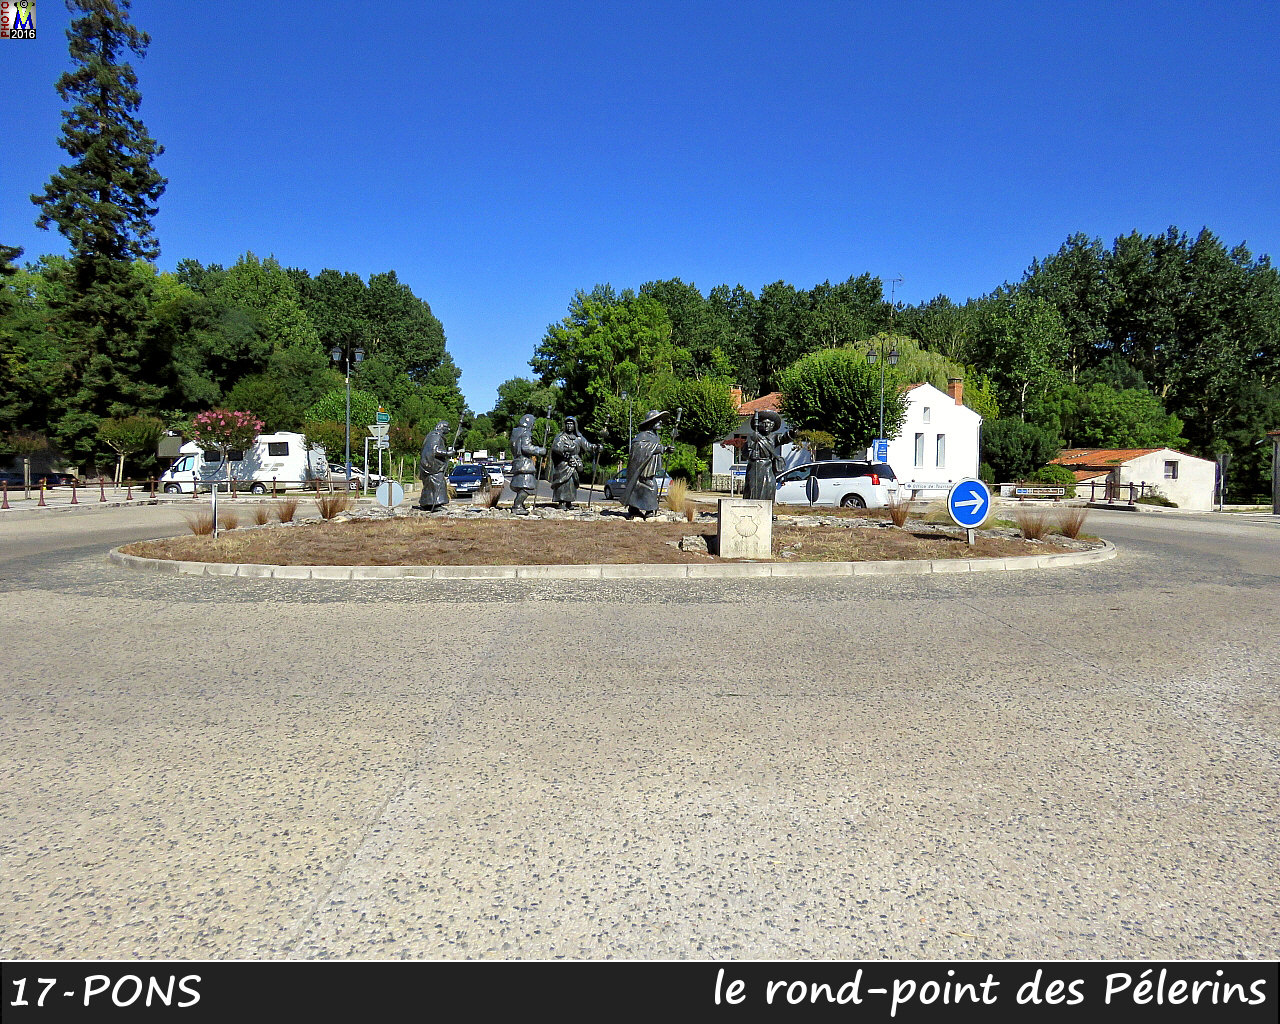 17PONS_Rond-point_1000.jpg